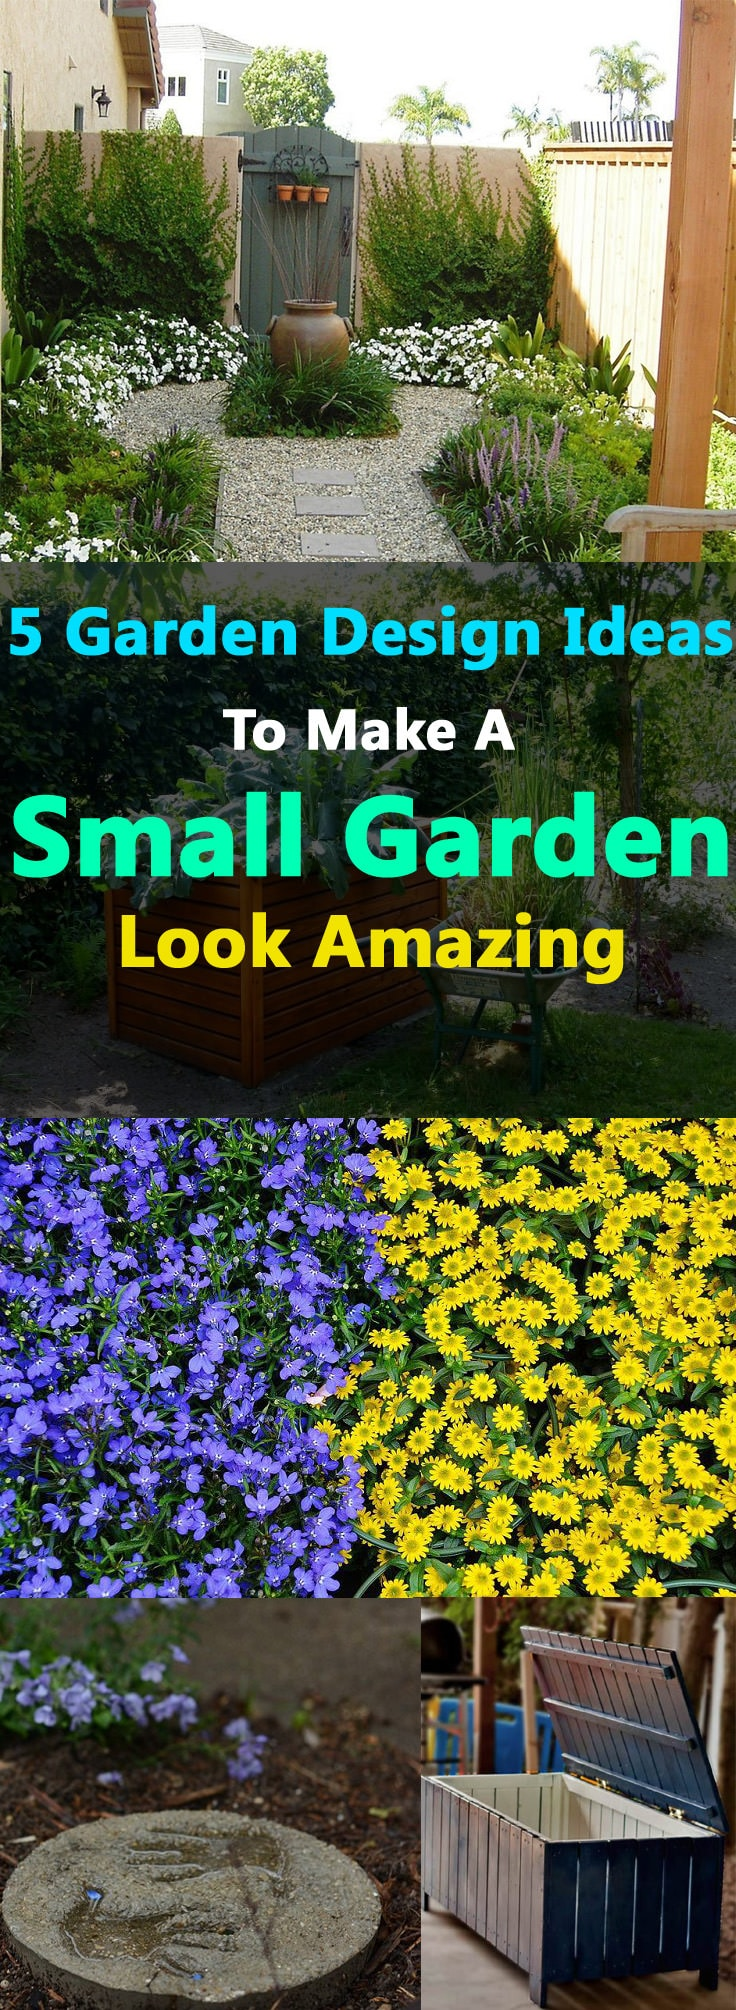 5 garden design ideas to make a small garden look amazing for How to design garden layout